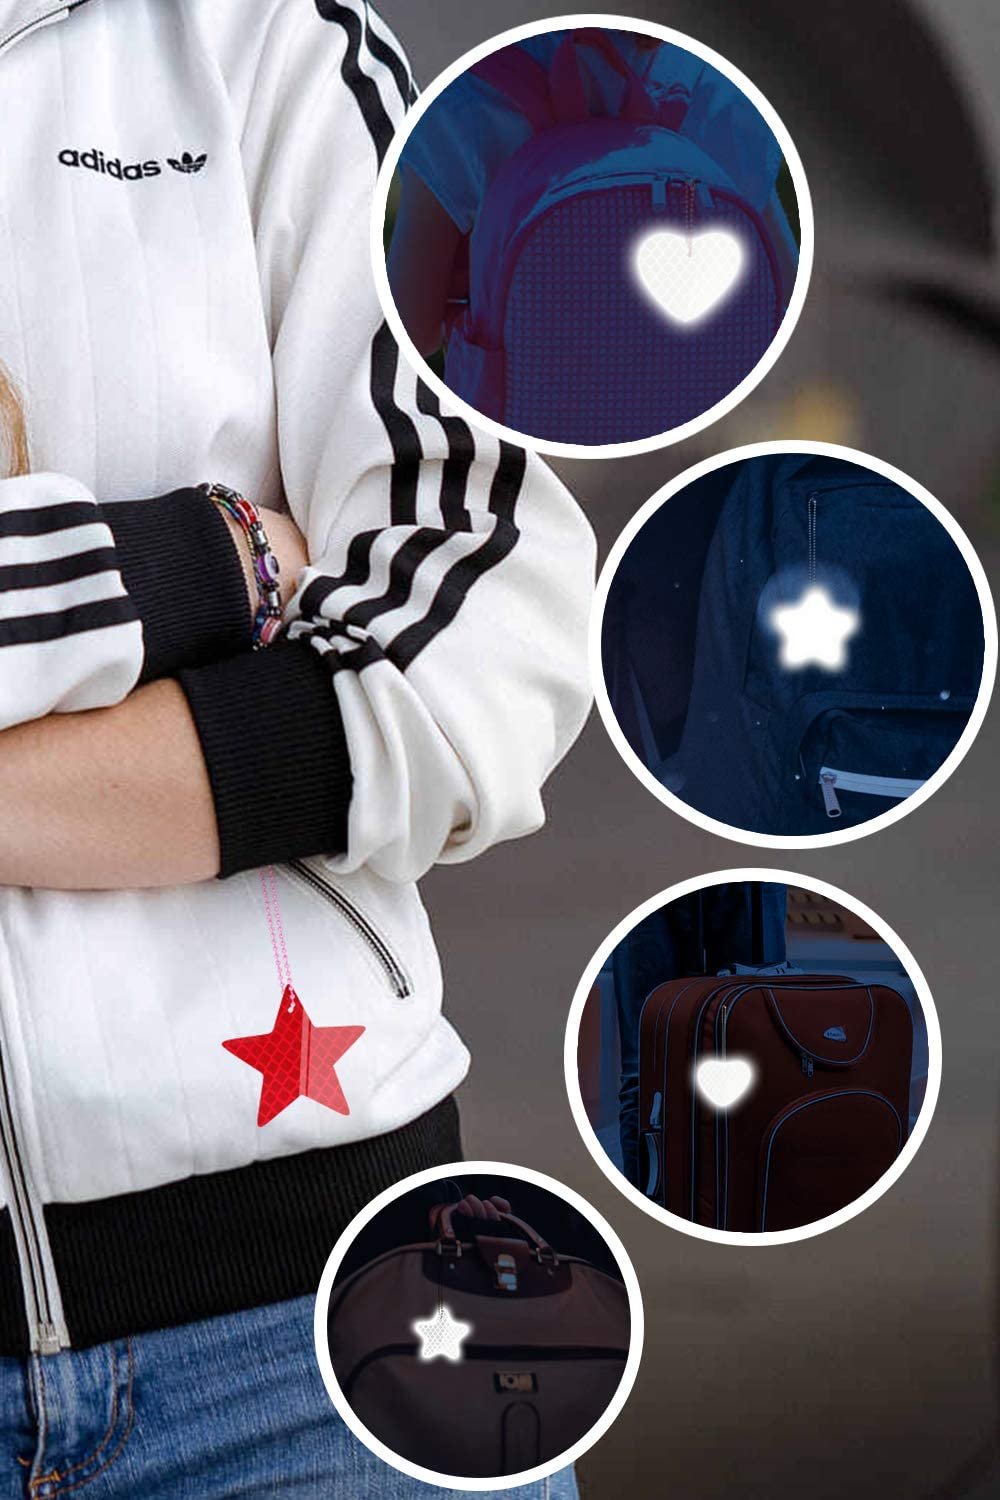 Hocaies Reflective Pendant Decoration with Ball Chain Attach to Backpack Jacket and Trolley Efficiently Reflects Light Beneficial to Road Safety.